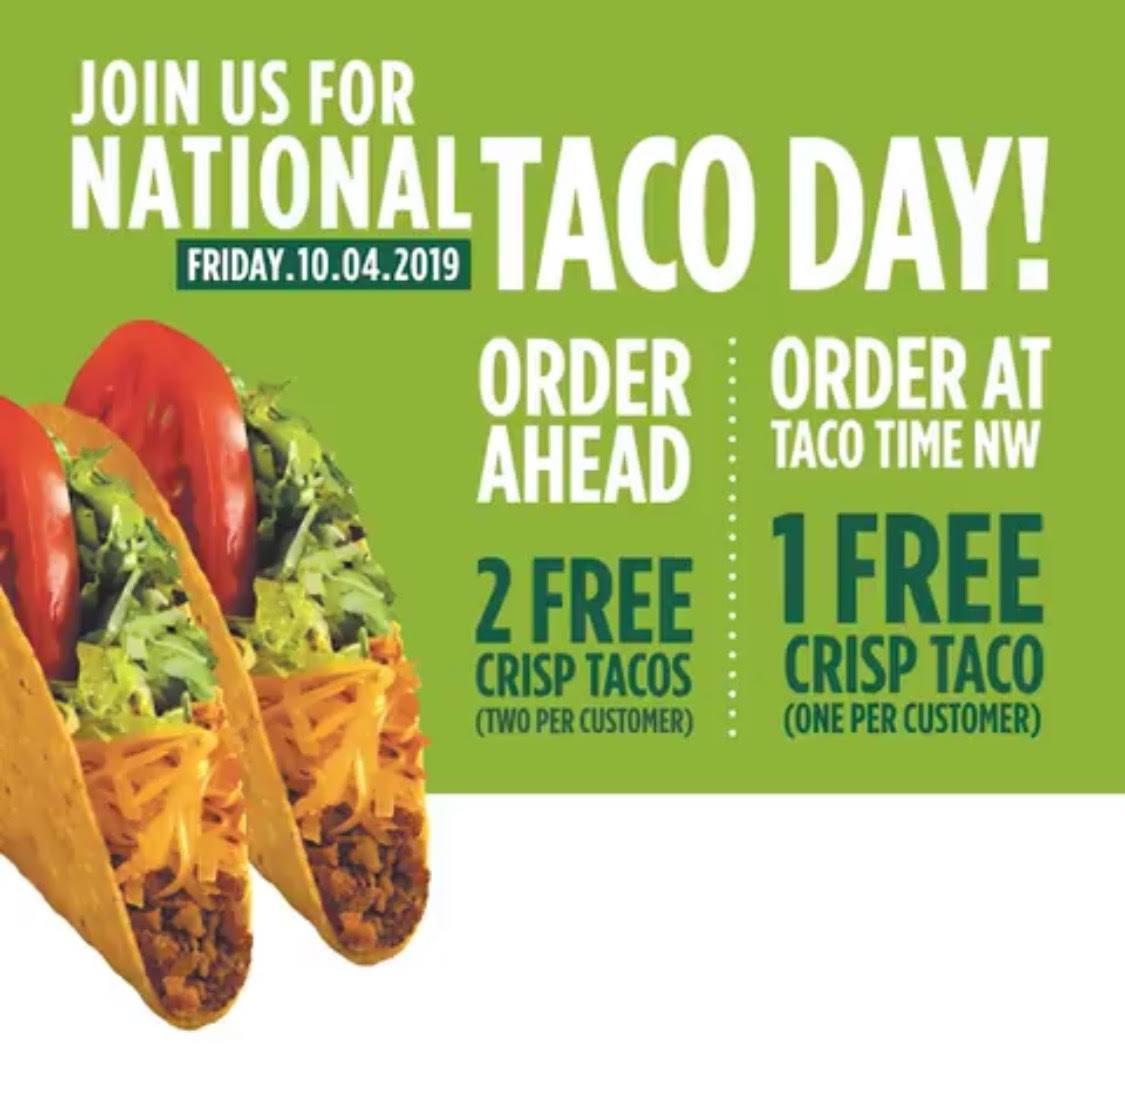 National Taco Day - Taco Time